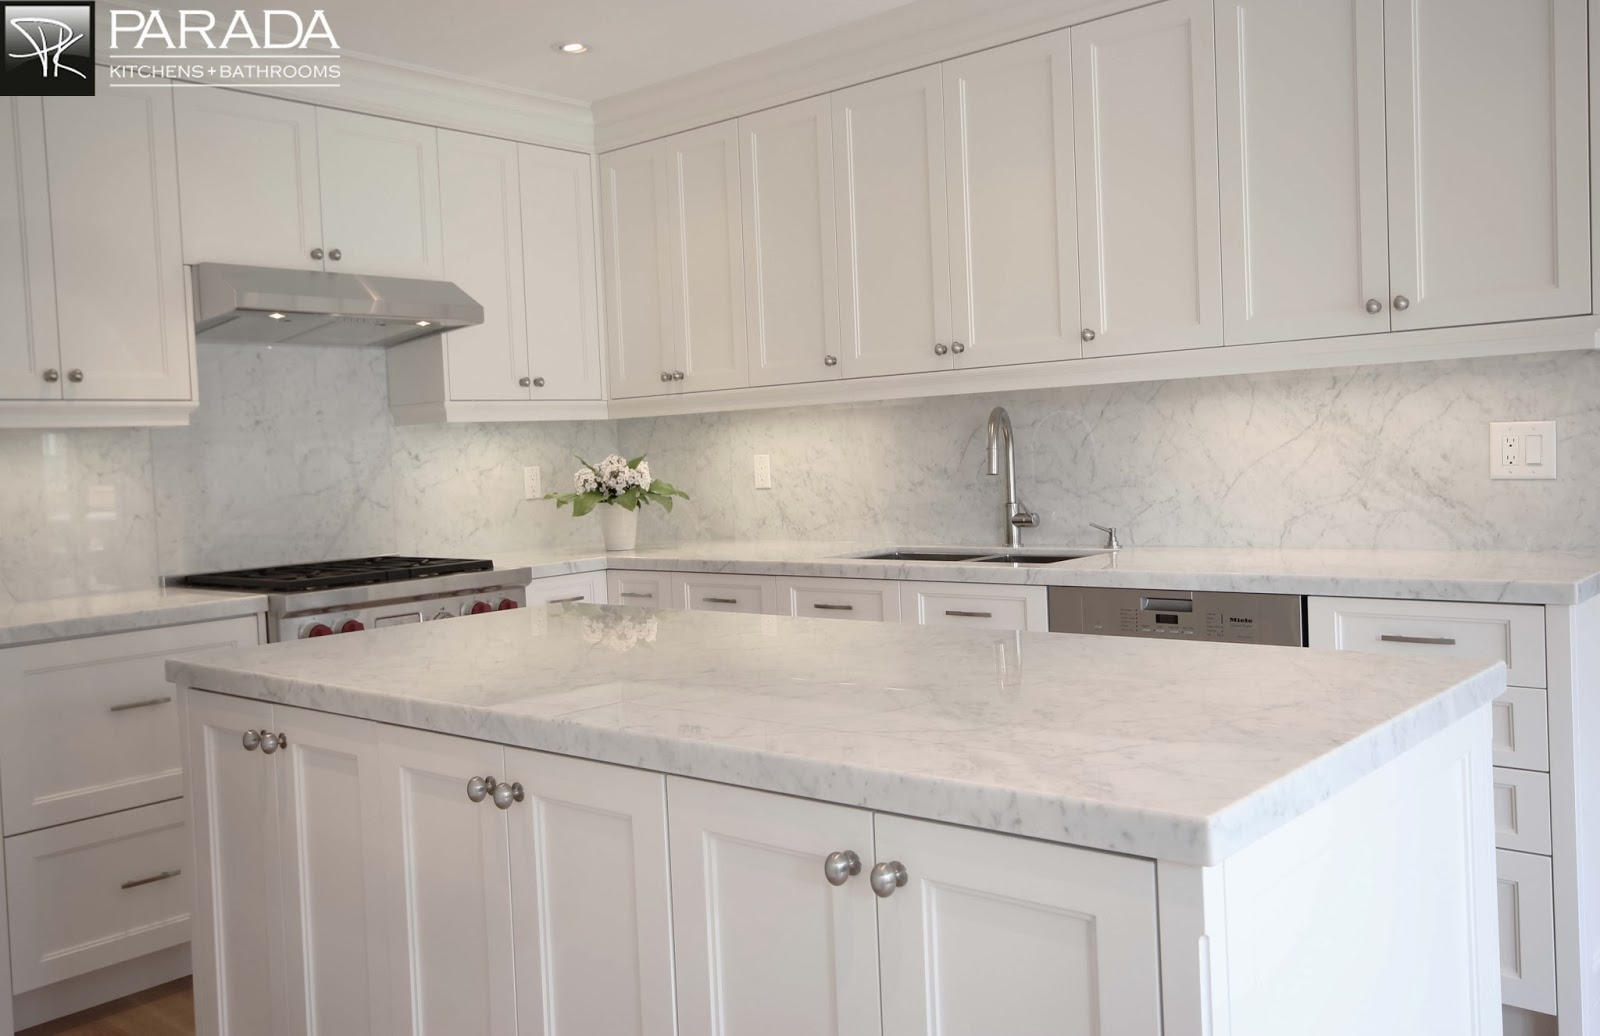 All White Kitchen C.b.i.dhome Decor And Design Non Sterile Kitchens